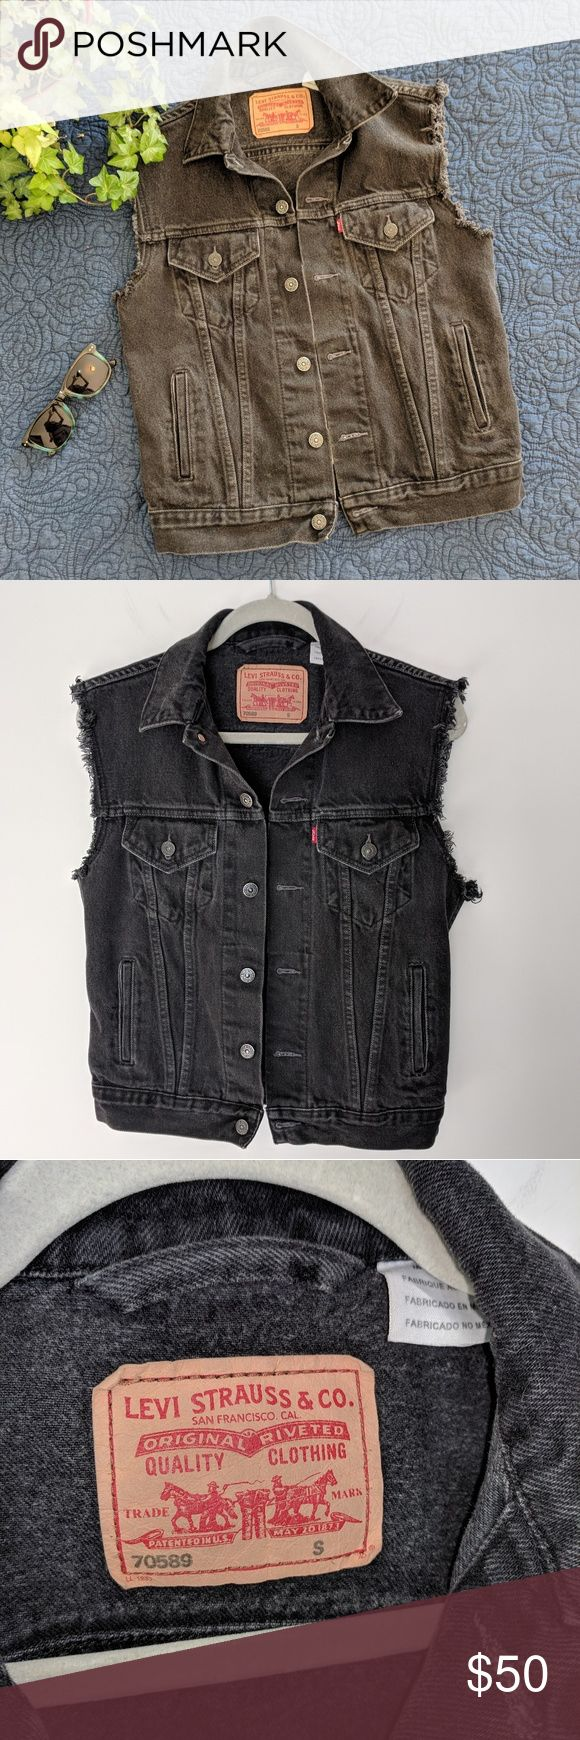 MEN'S Vintage Levi's Black Denim Vest EUC This classic vintage denim will give your outfit the edge! Hand-cut from a standard trucker jacket, perfectly worn-in and frayed. Ladies, consider this item for a trendy oversized look! Levi's Jackets & Coats Vests